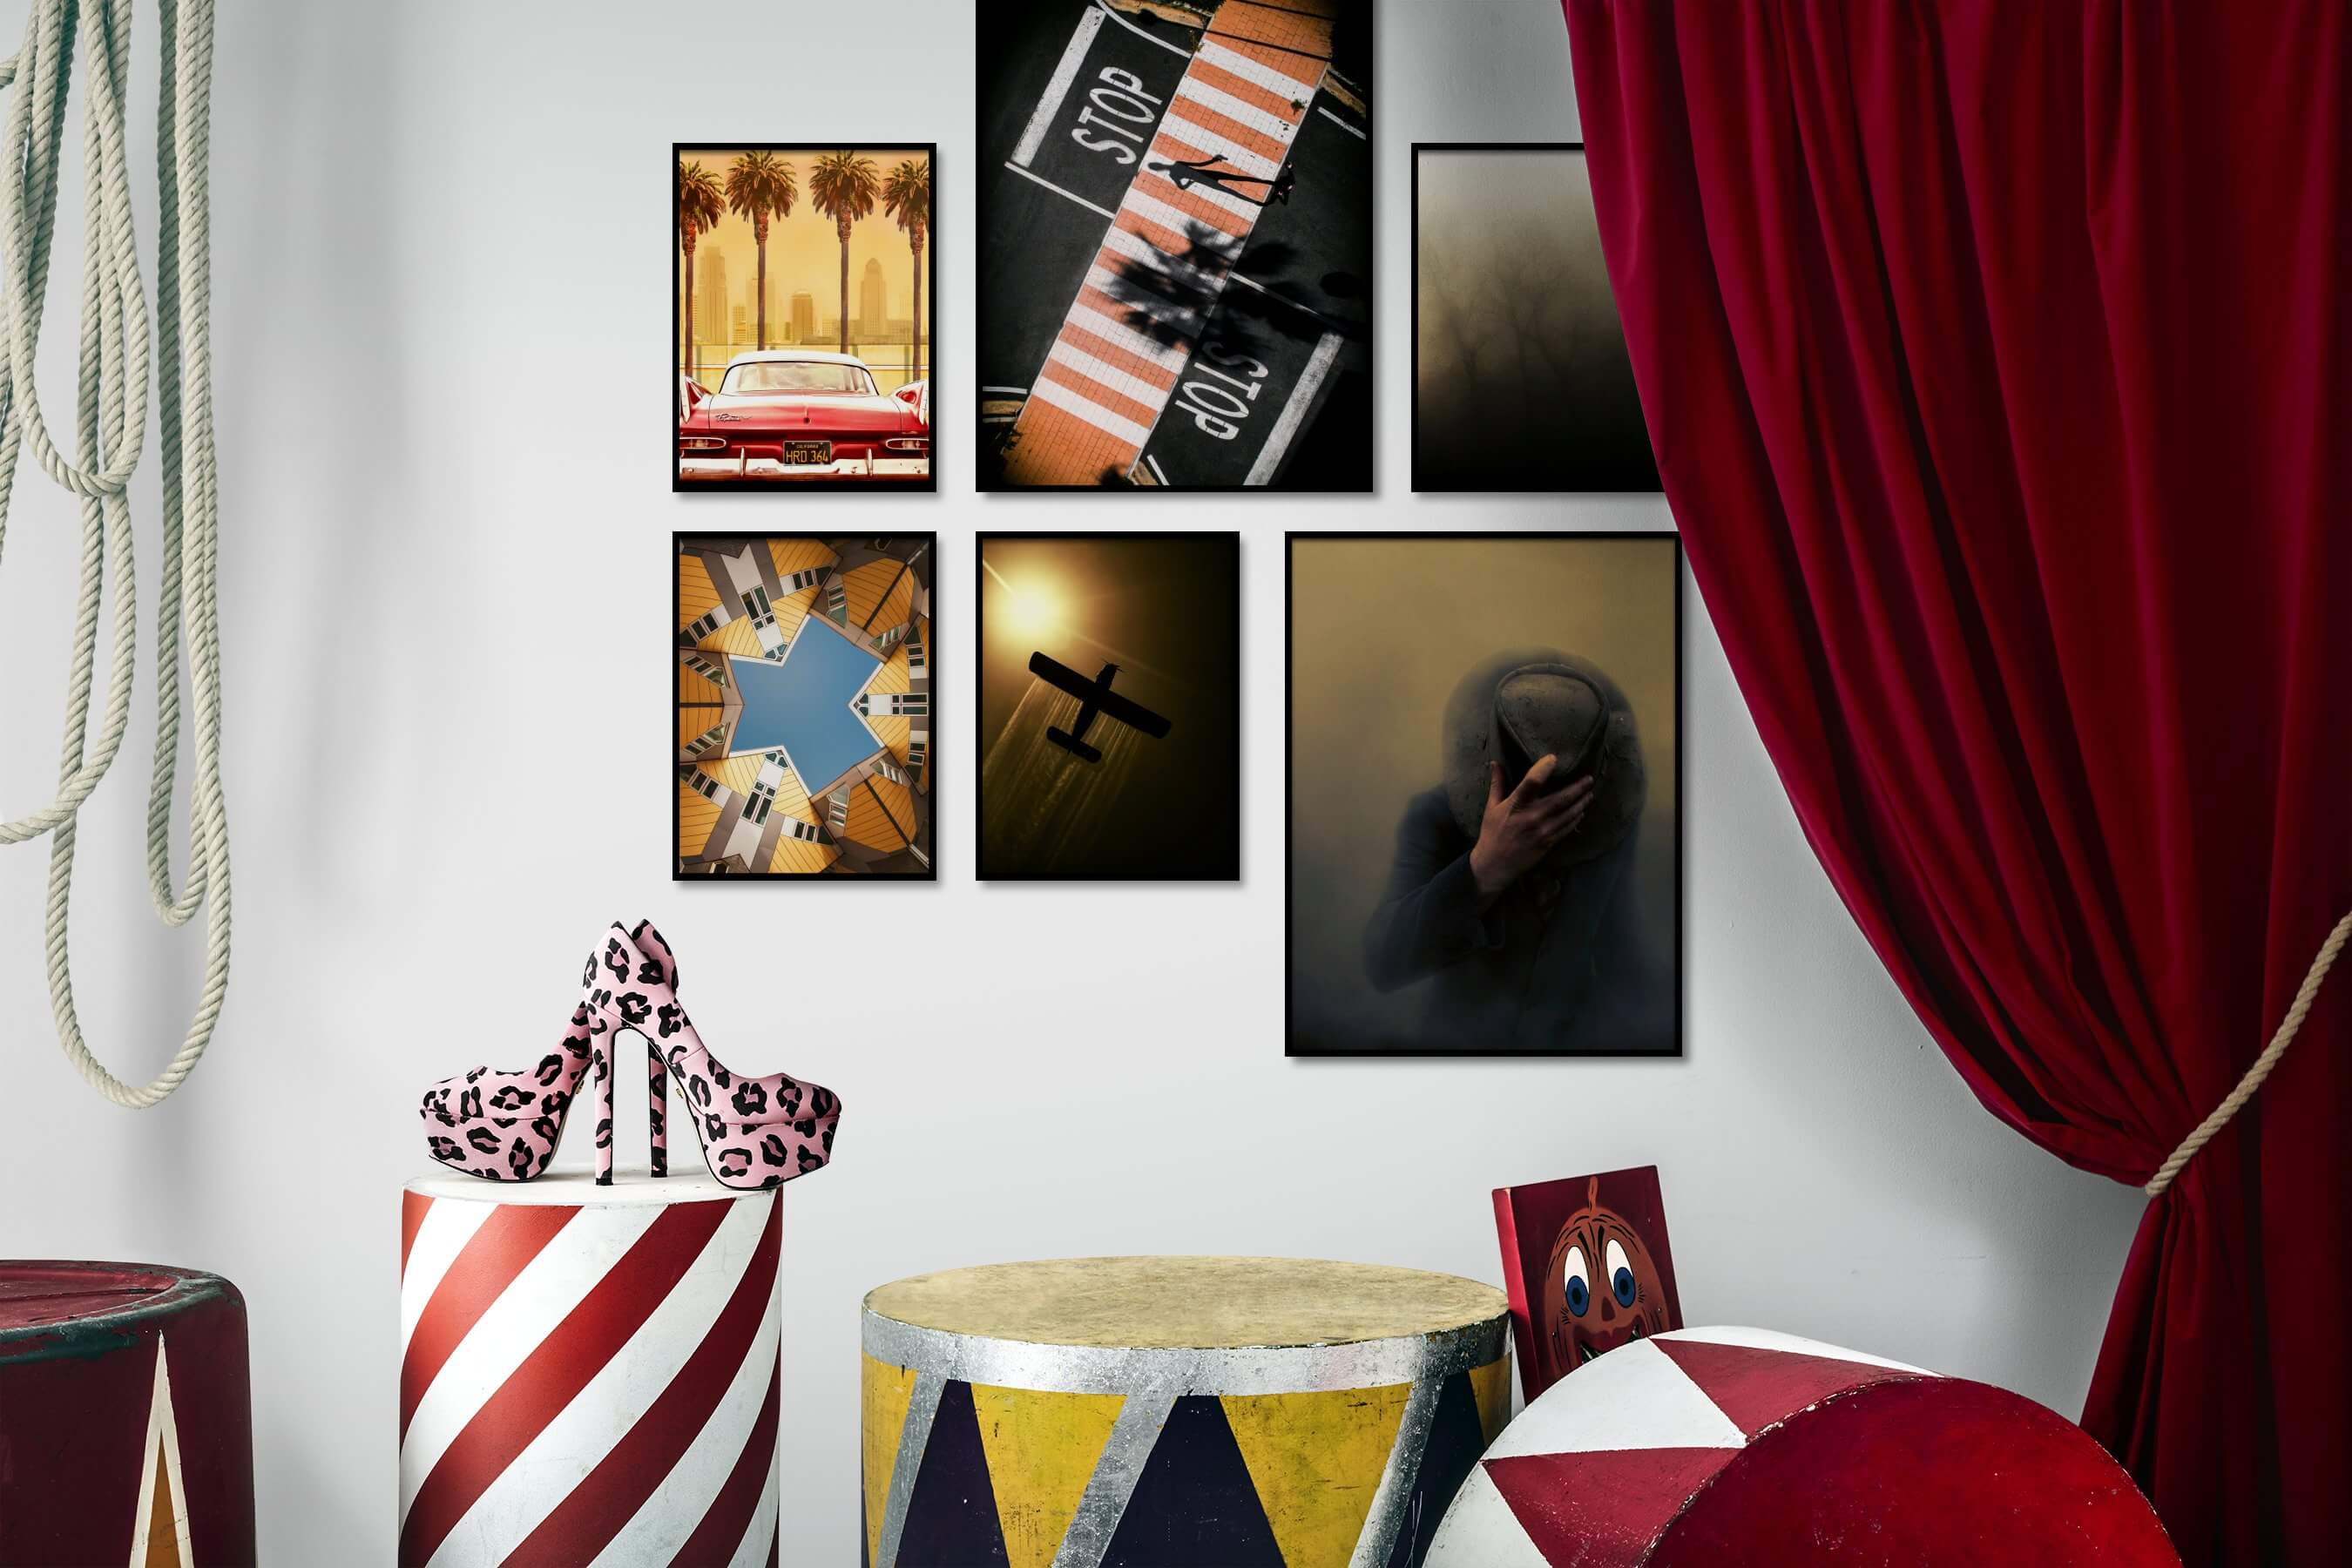 Gallery wall idea with six framed pictures arranged on a wall depicting City Life, Americana, Vintage, For the Moderate, Fashion & Beauty, For the Minimalist, and Nature